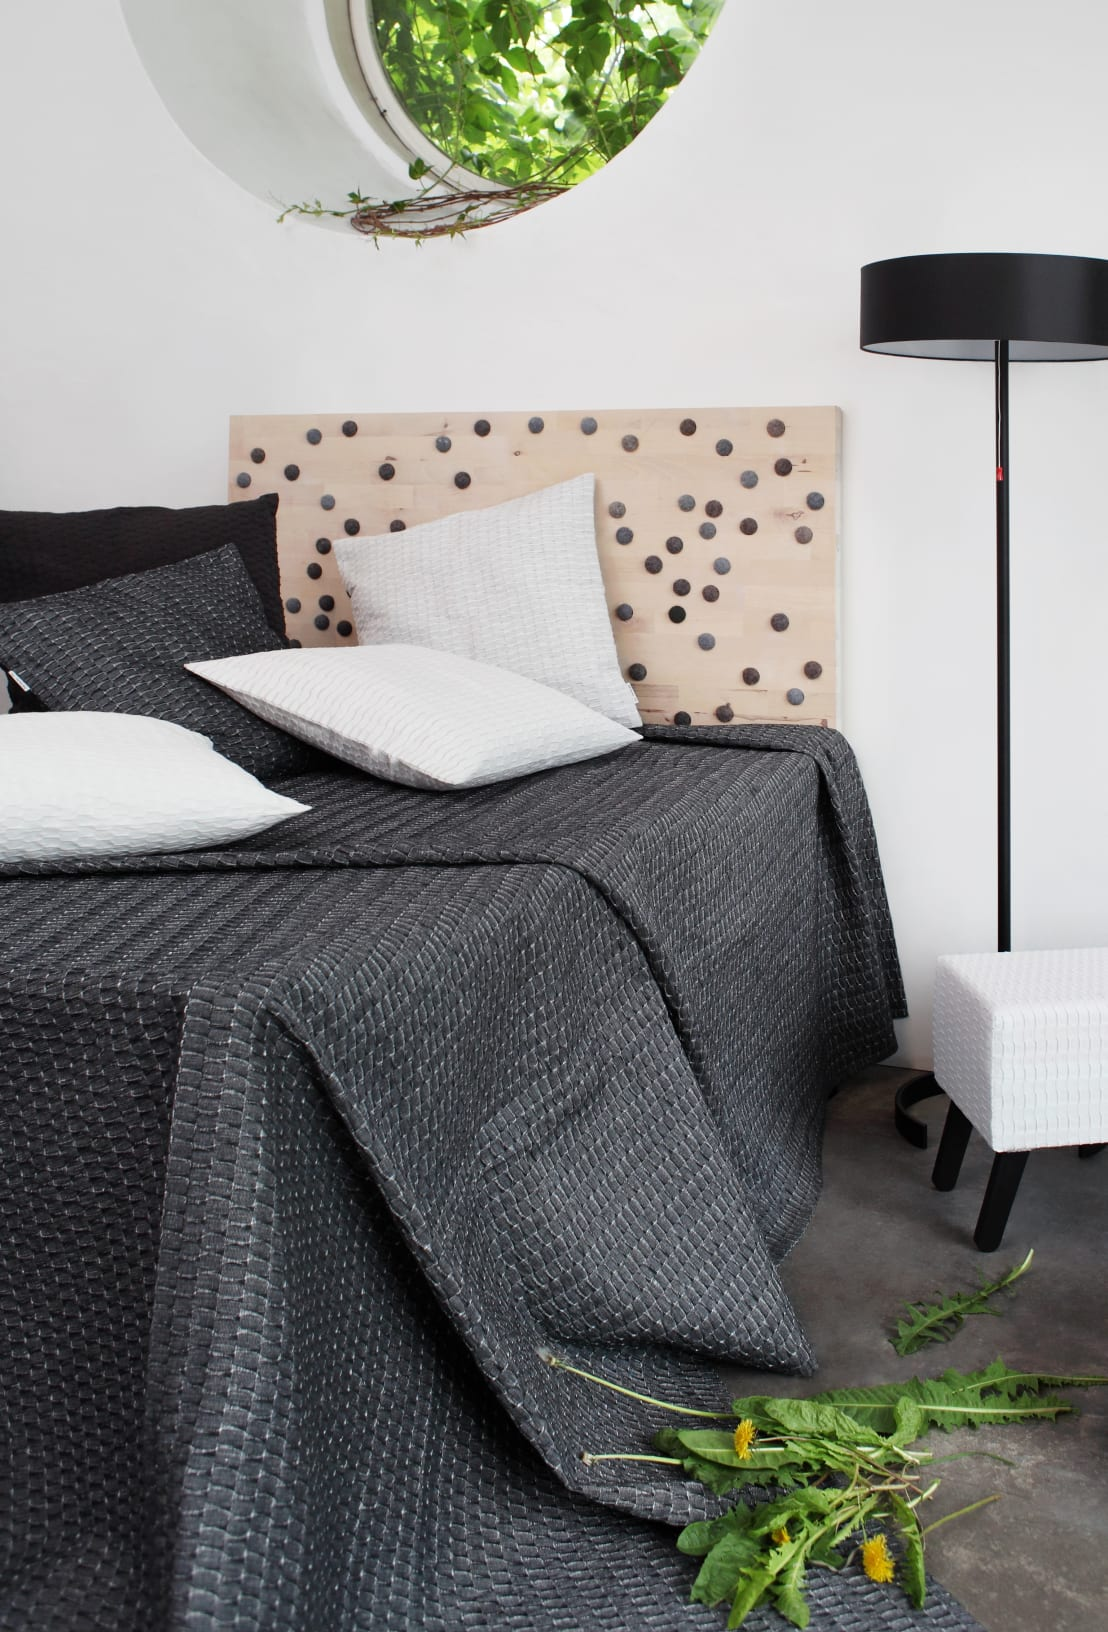 nat rliche wohntextilien f r einen scandi look von baltic design shop homify. Black Bedroom Furniture Sets. Home Design Ideas